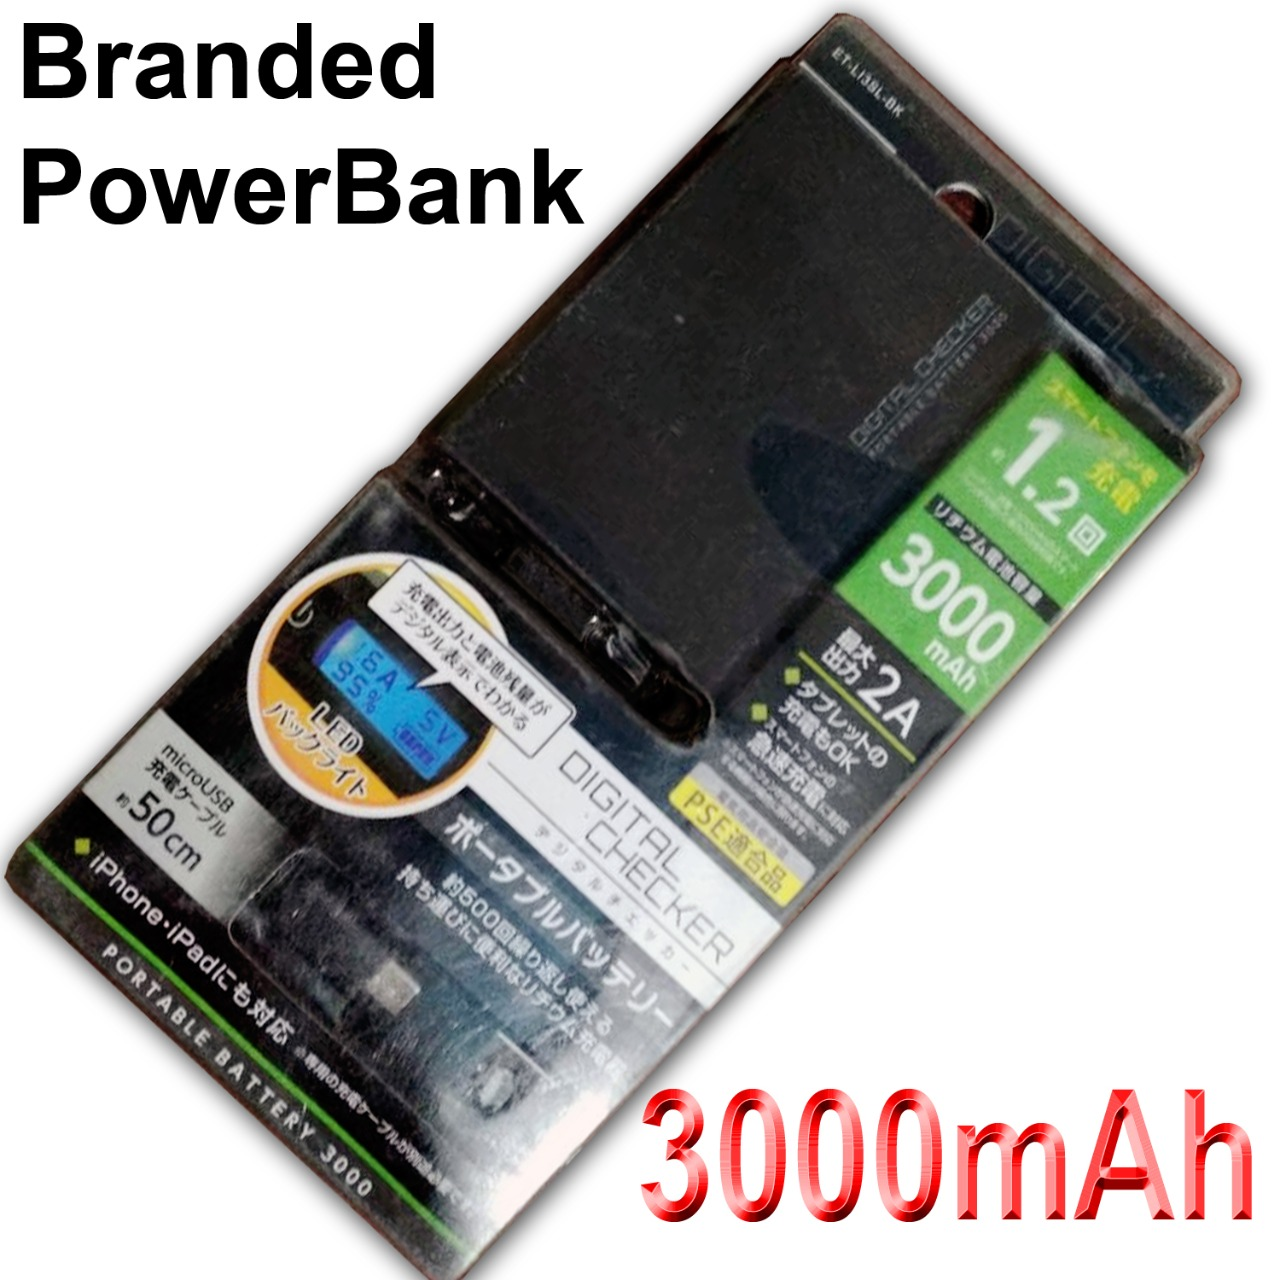 3000 mah Power Bank for all mobile phones